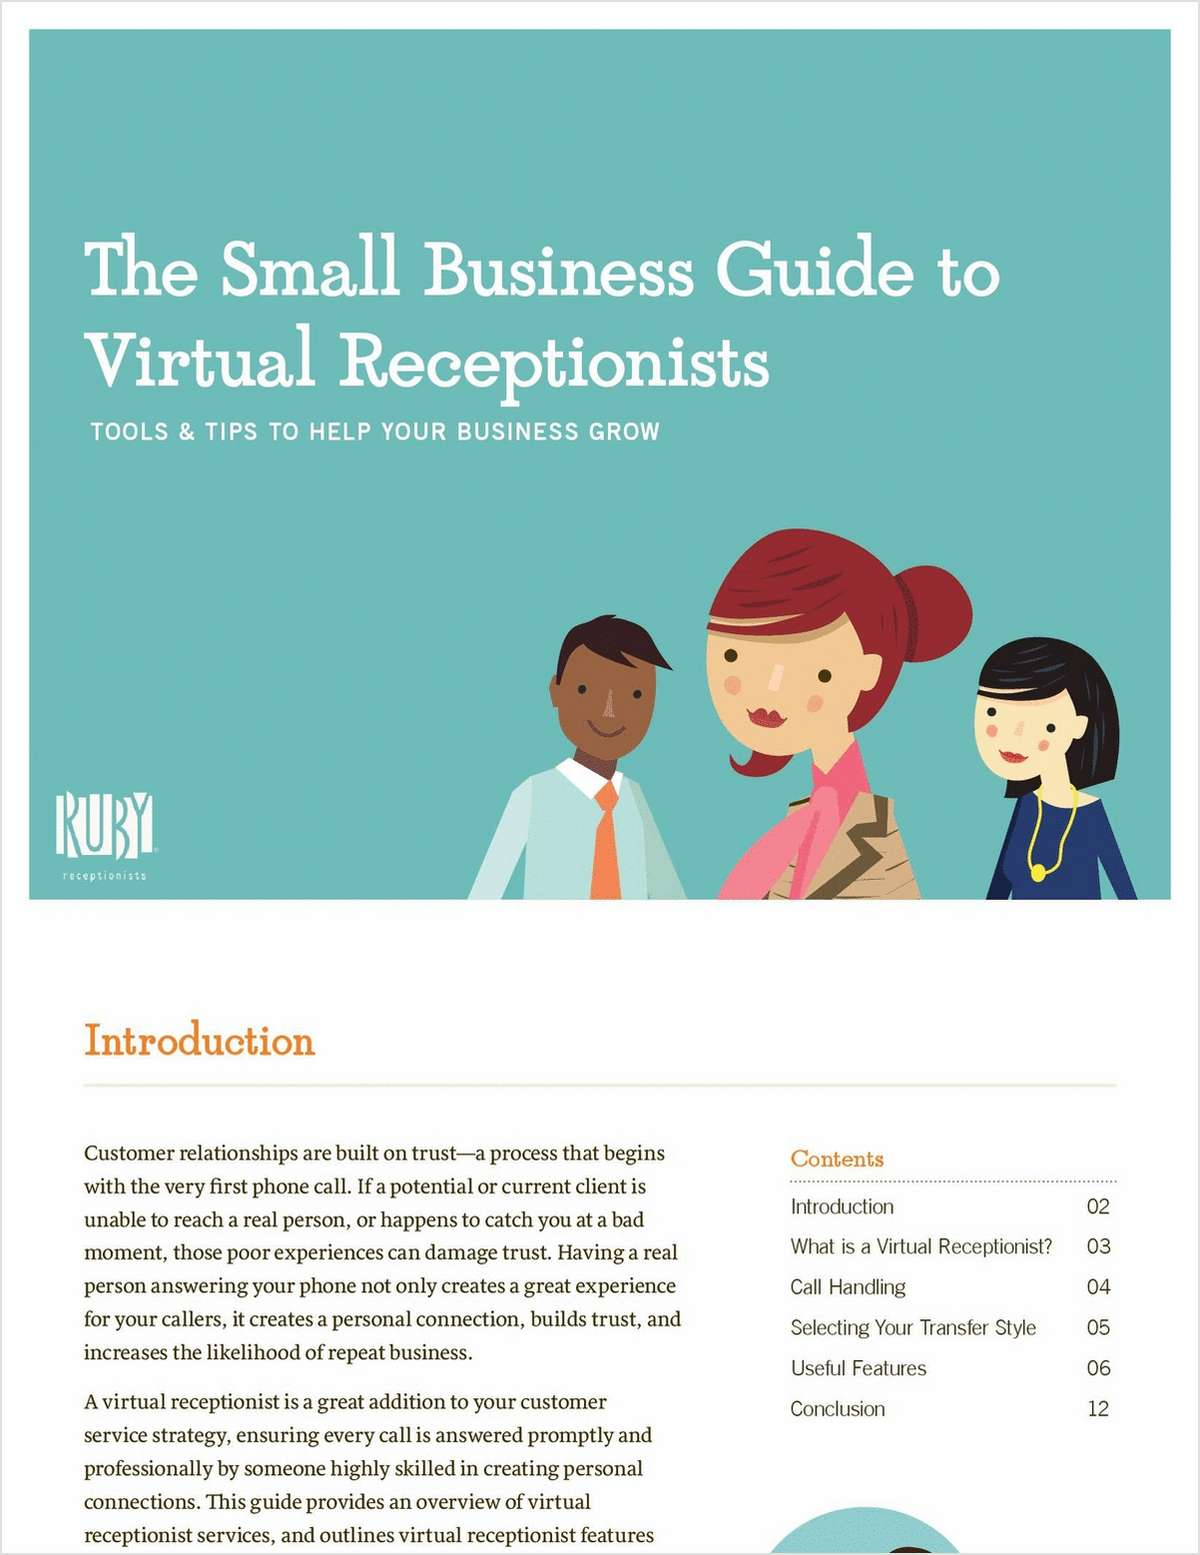 The Small Business Guide to Virtual Receptionists